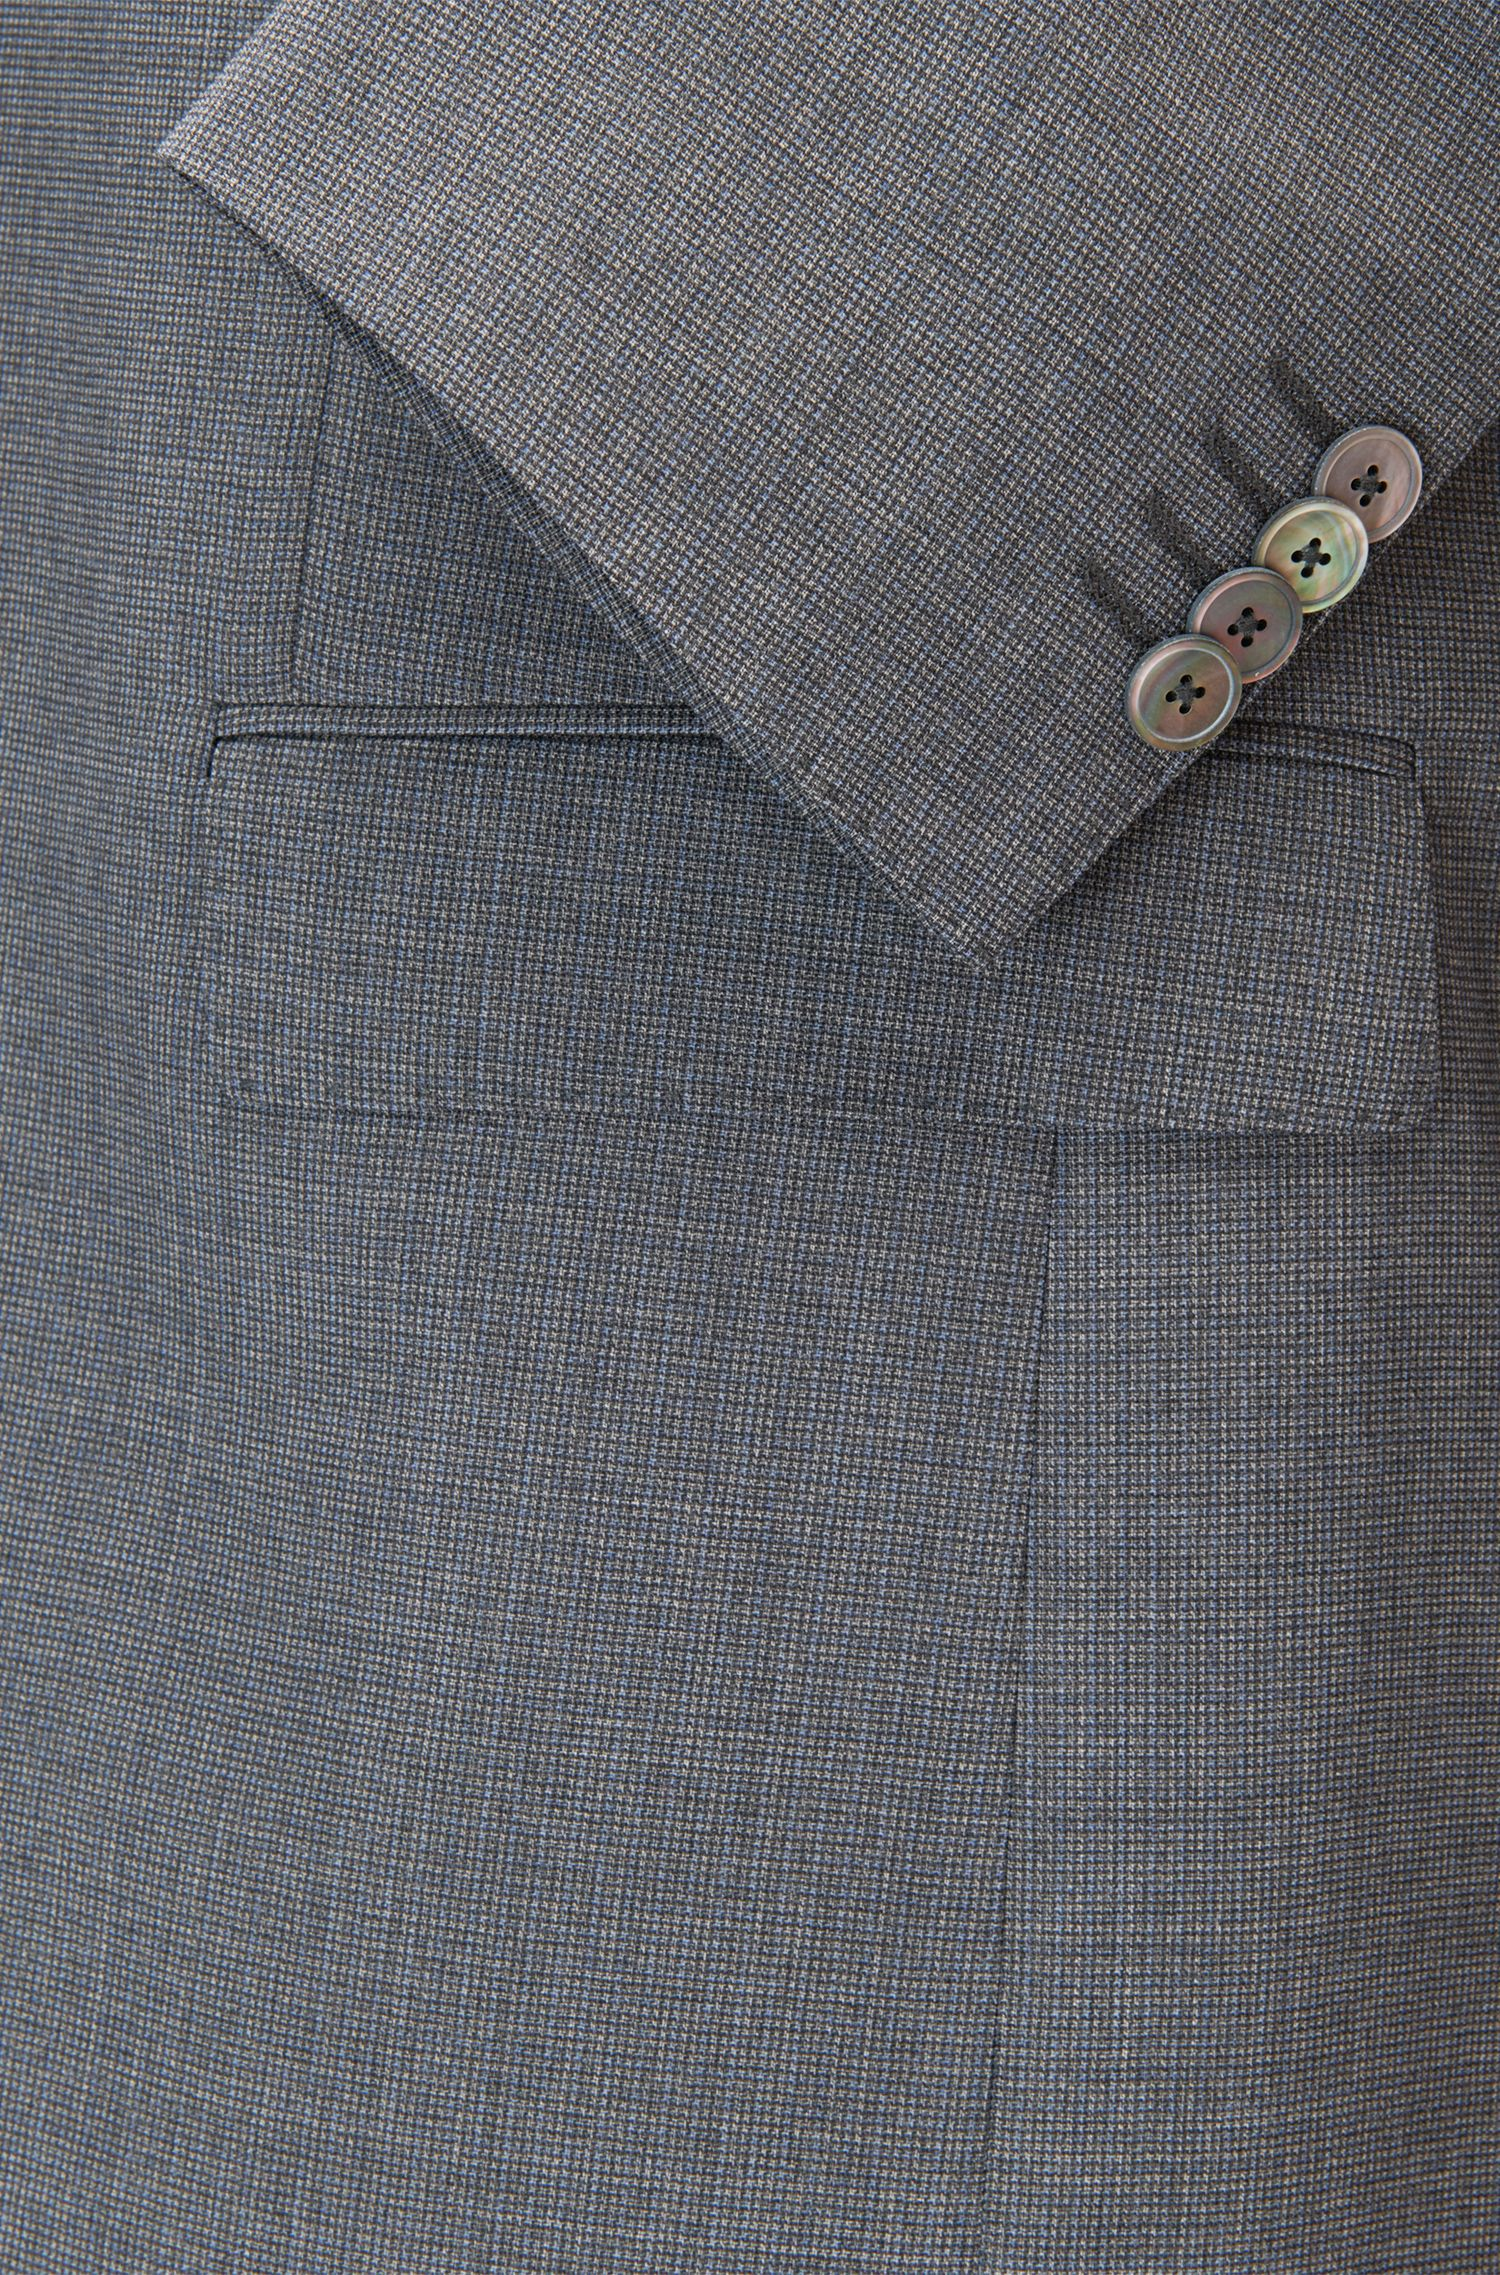 Heathered Virgin Wool Suit, Slim Fit | Hutson/Gander, Grey